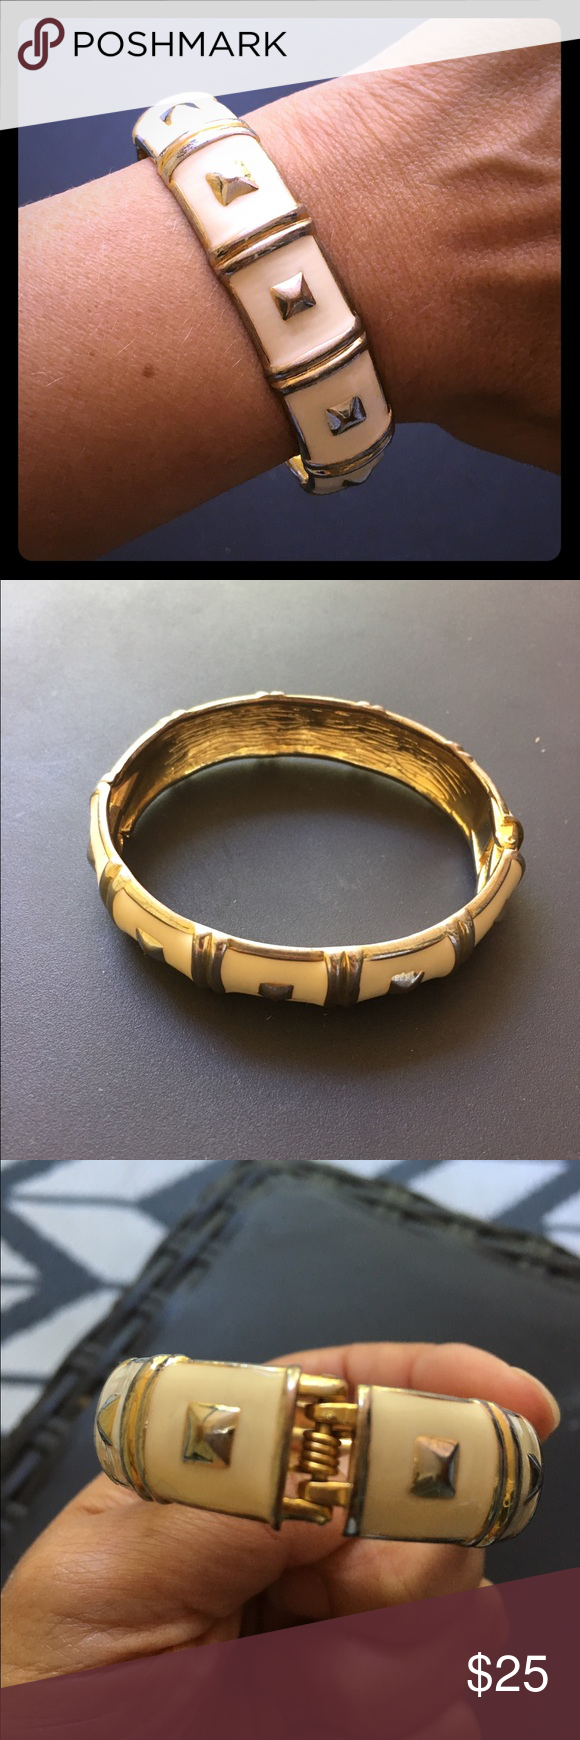 "Gold Metal and Ivory Enamel Bracelet Gold Metal and Ivory Enamel Bracelet. Oval shape 2.25"" x 1.75"". A little over .5"" wide. Opens on a hinge to slip on wrist. No brand markings. Jewelry Bracelets"